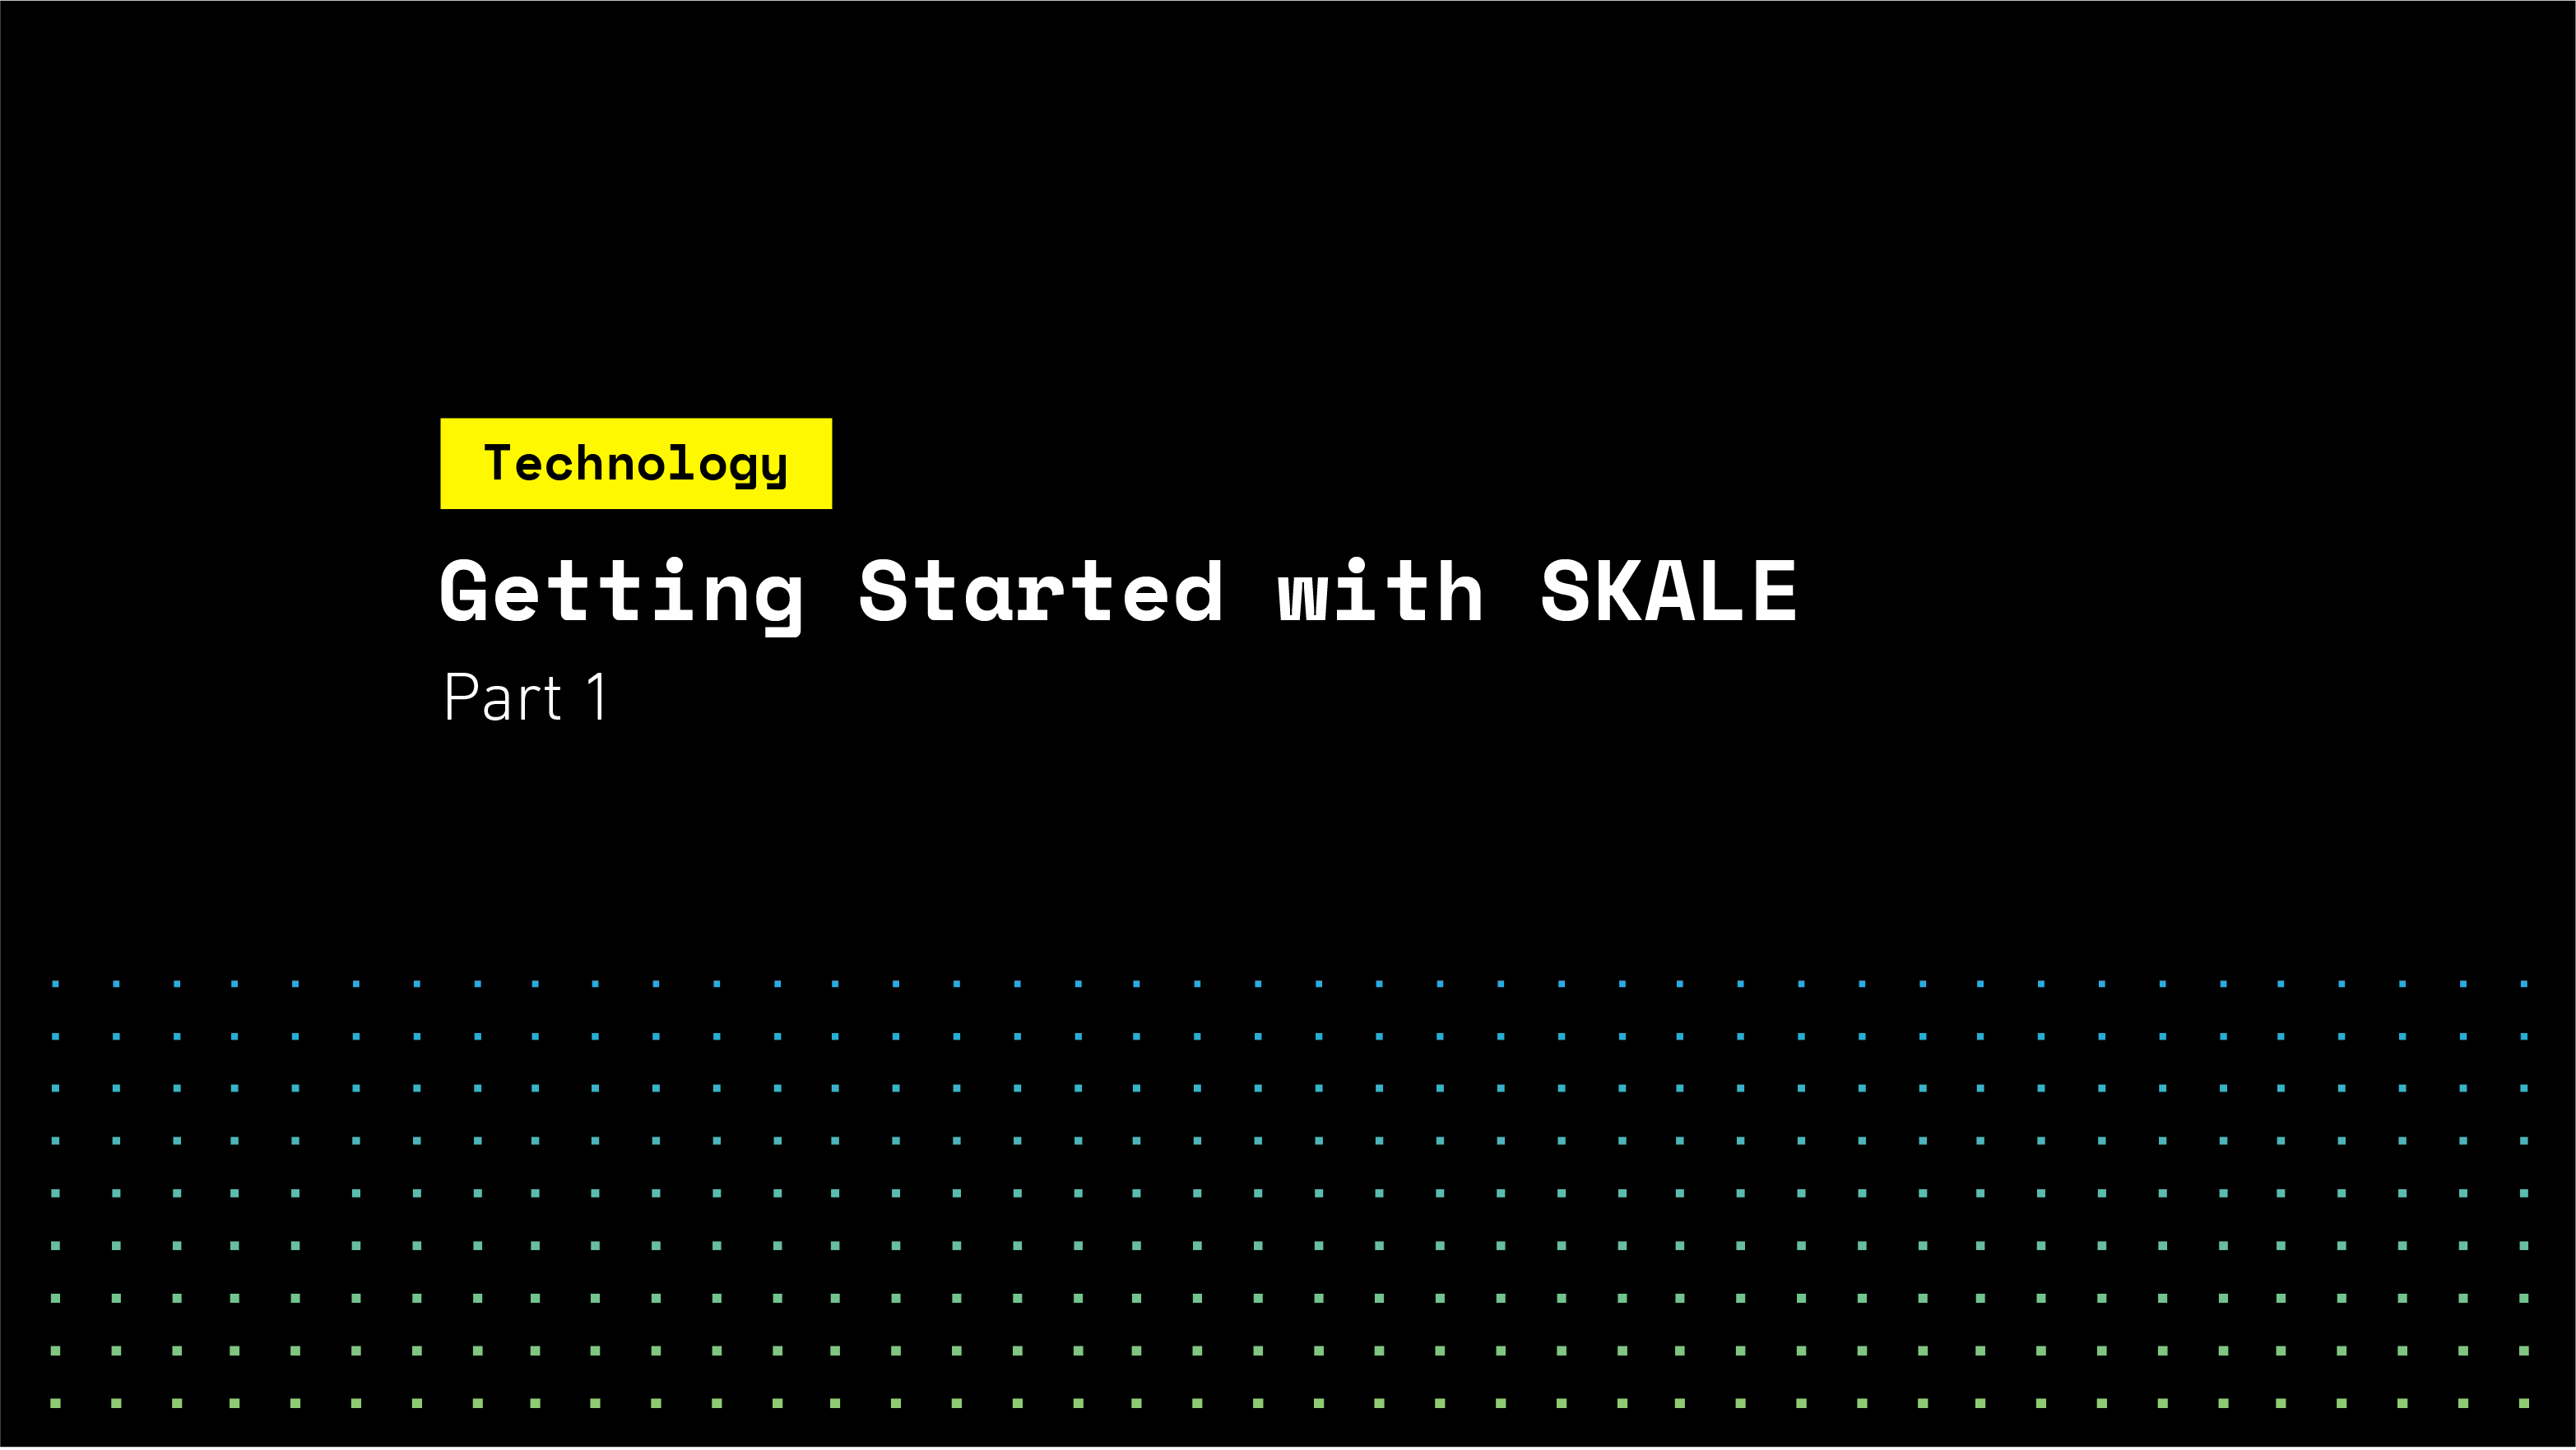 Getting Started with SKALE